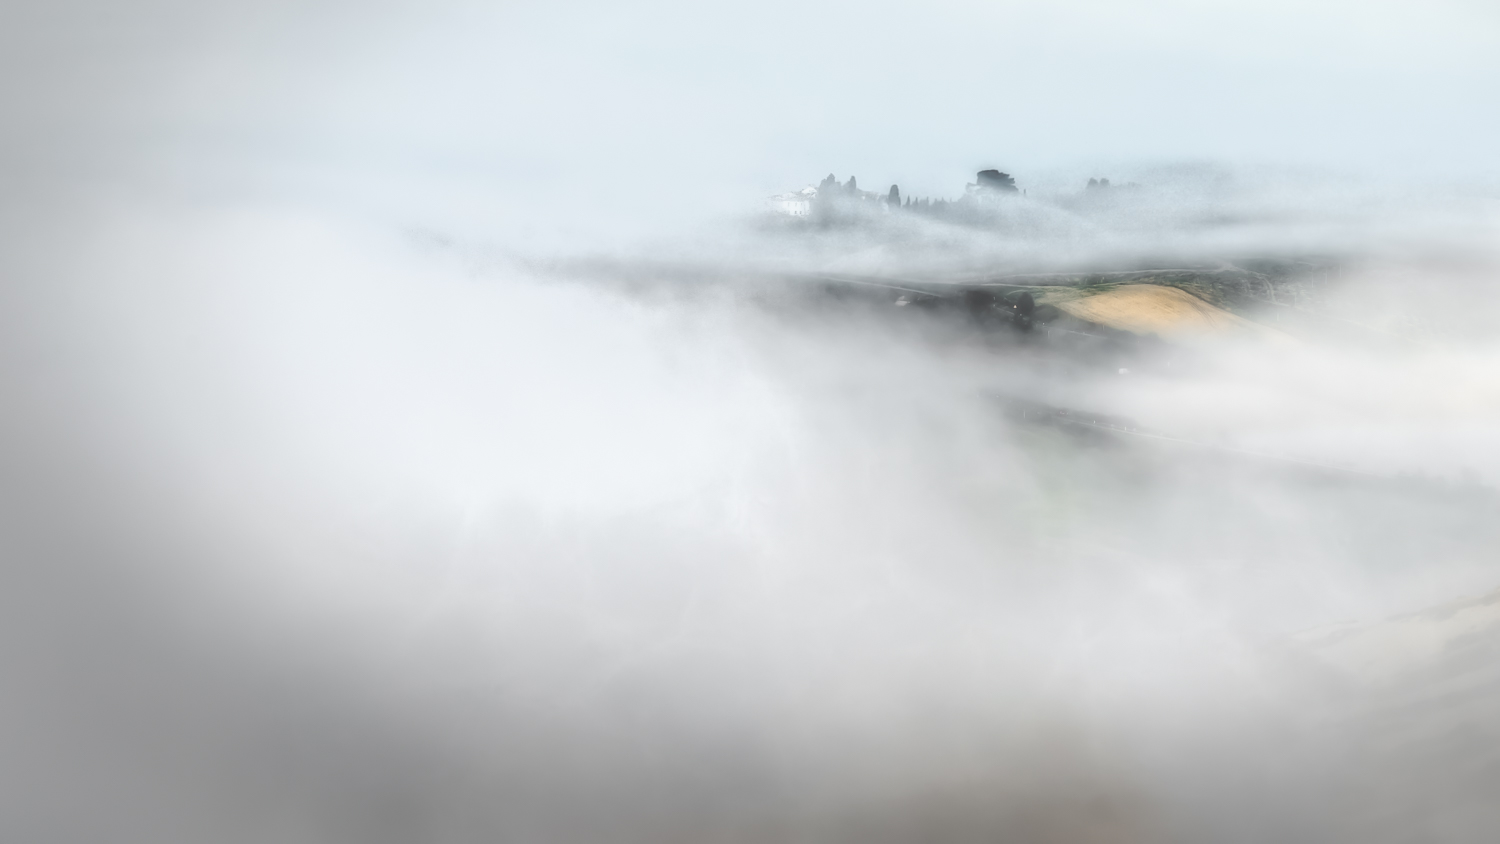 Just a hint of a Tuscan villa shrouded in fog